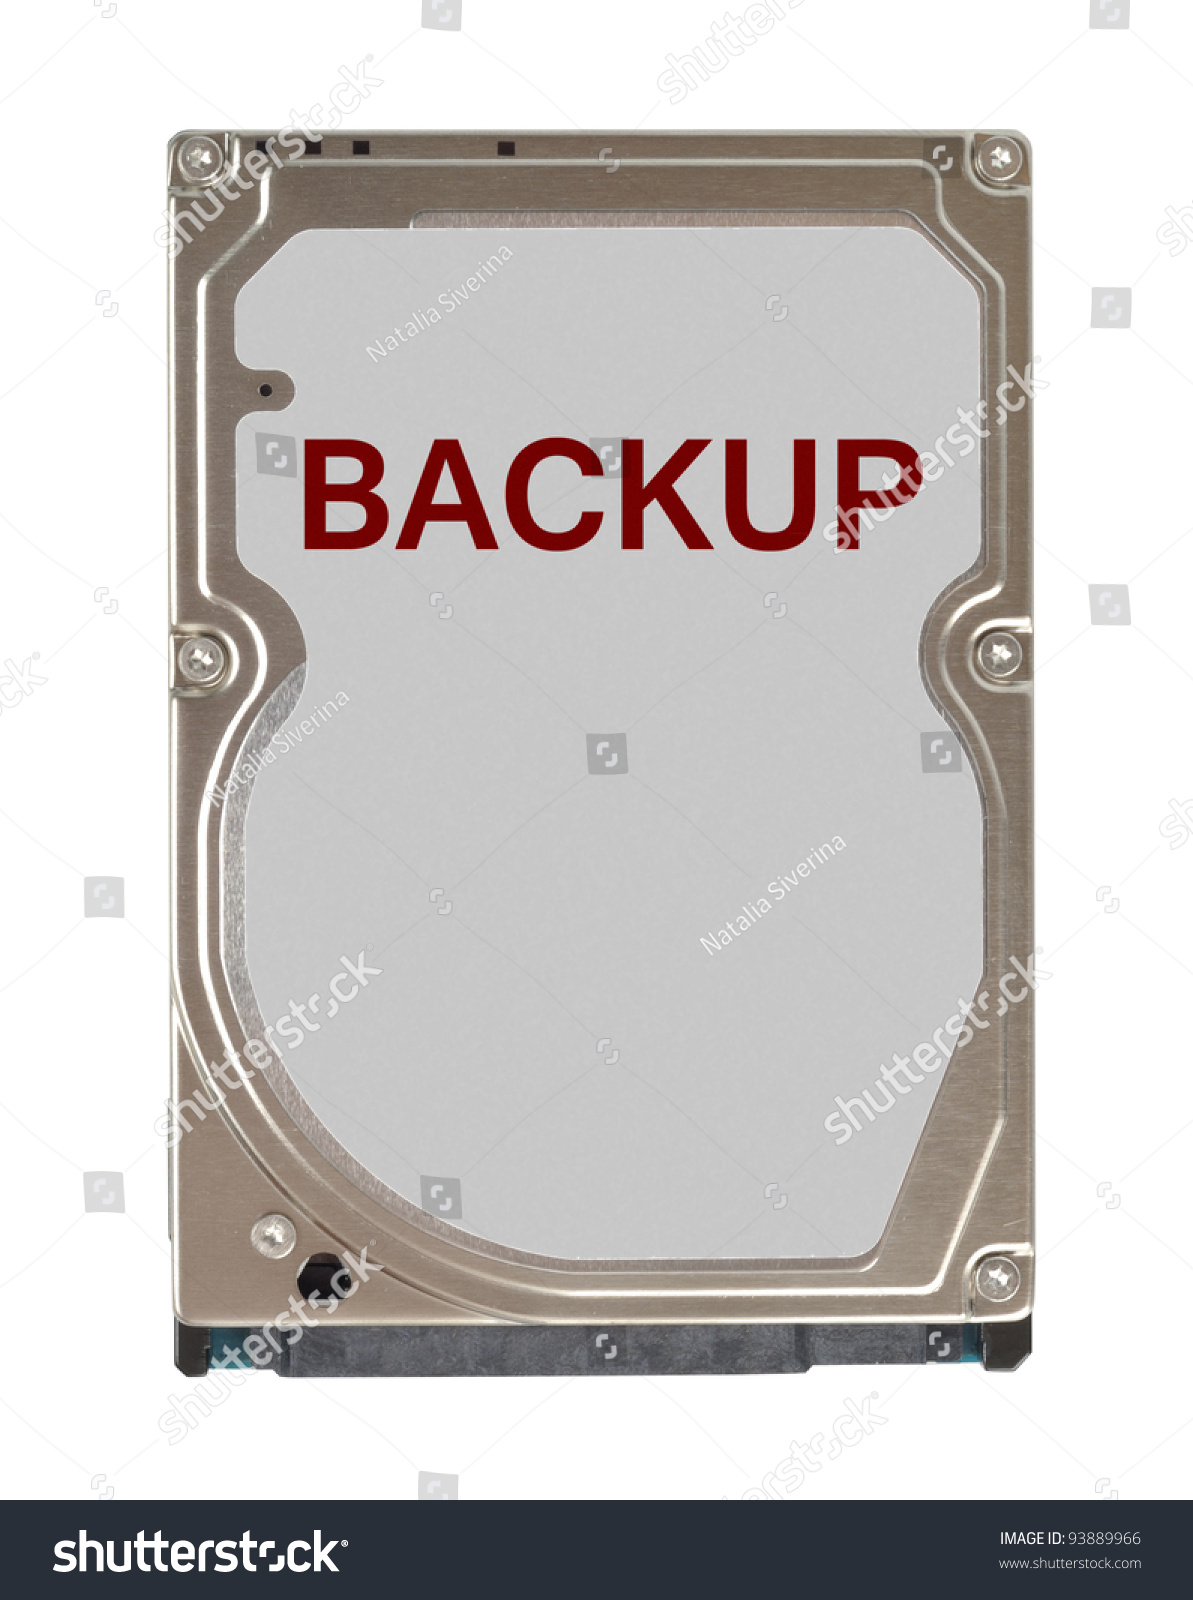 how to backup iphone photos to hard drive